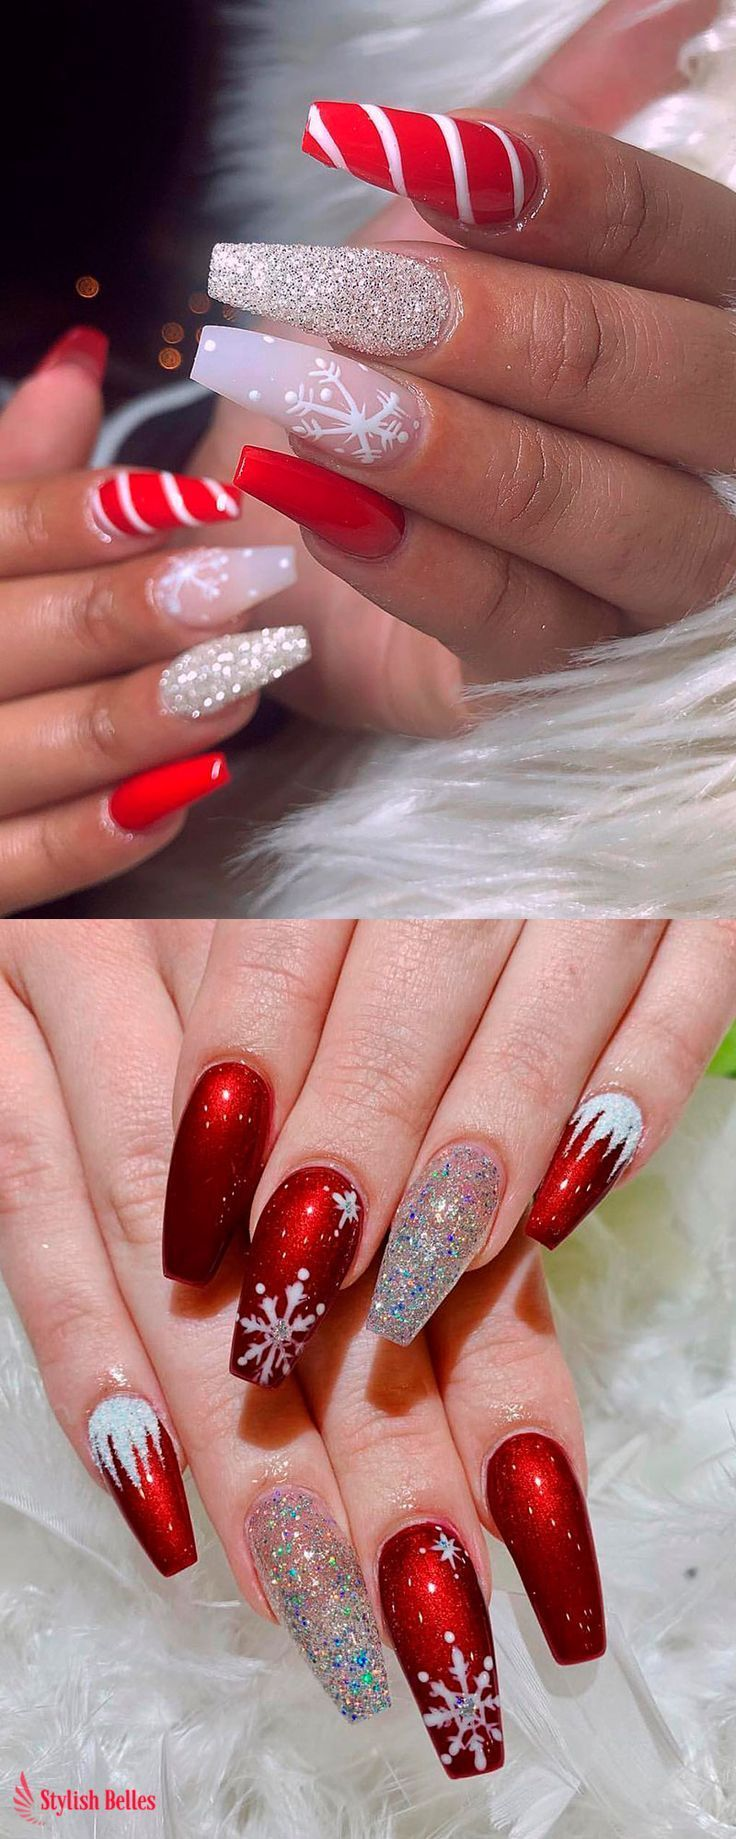 the cutest and festive christmas nail designs for celebration in 2020 red christmas nails chistmas nails cute christmas nails the cutest and festive christmas nail